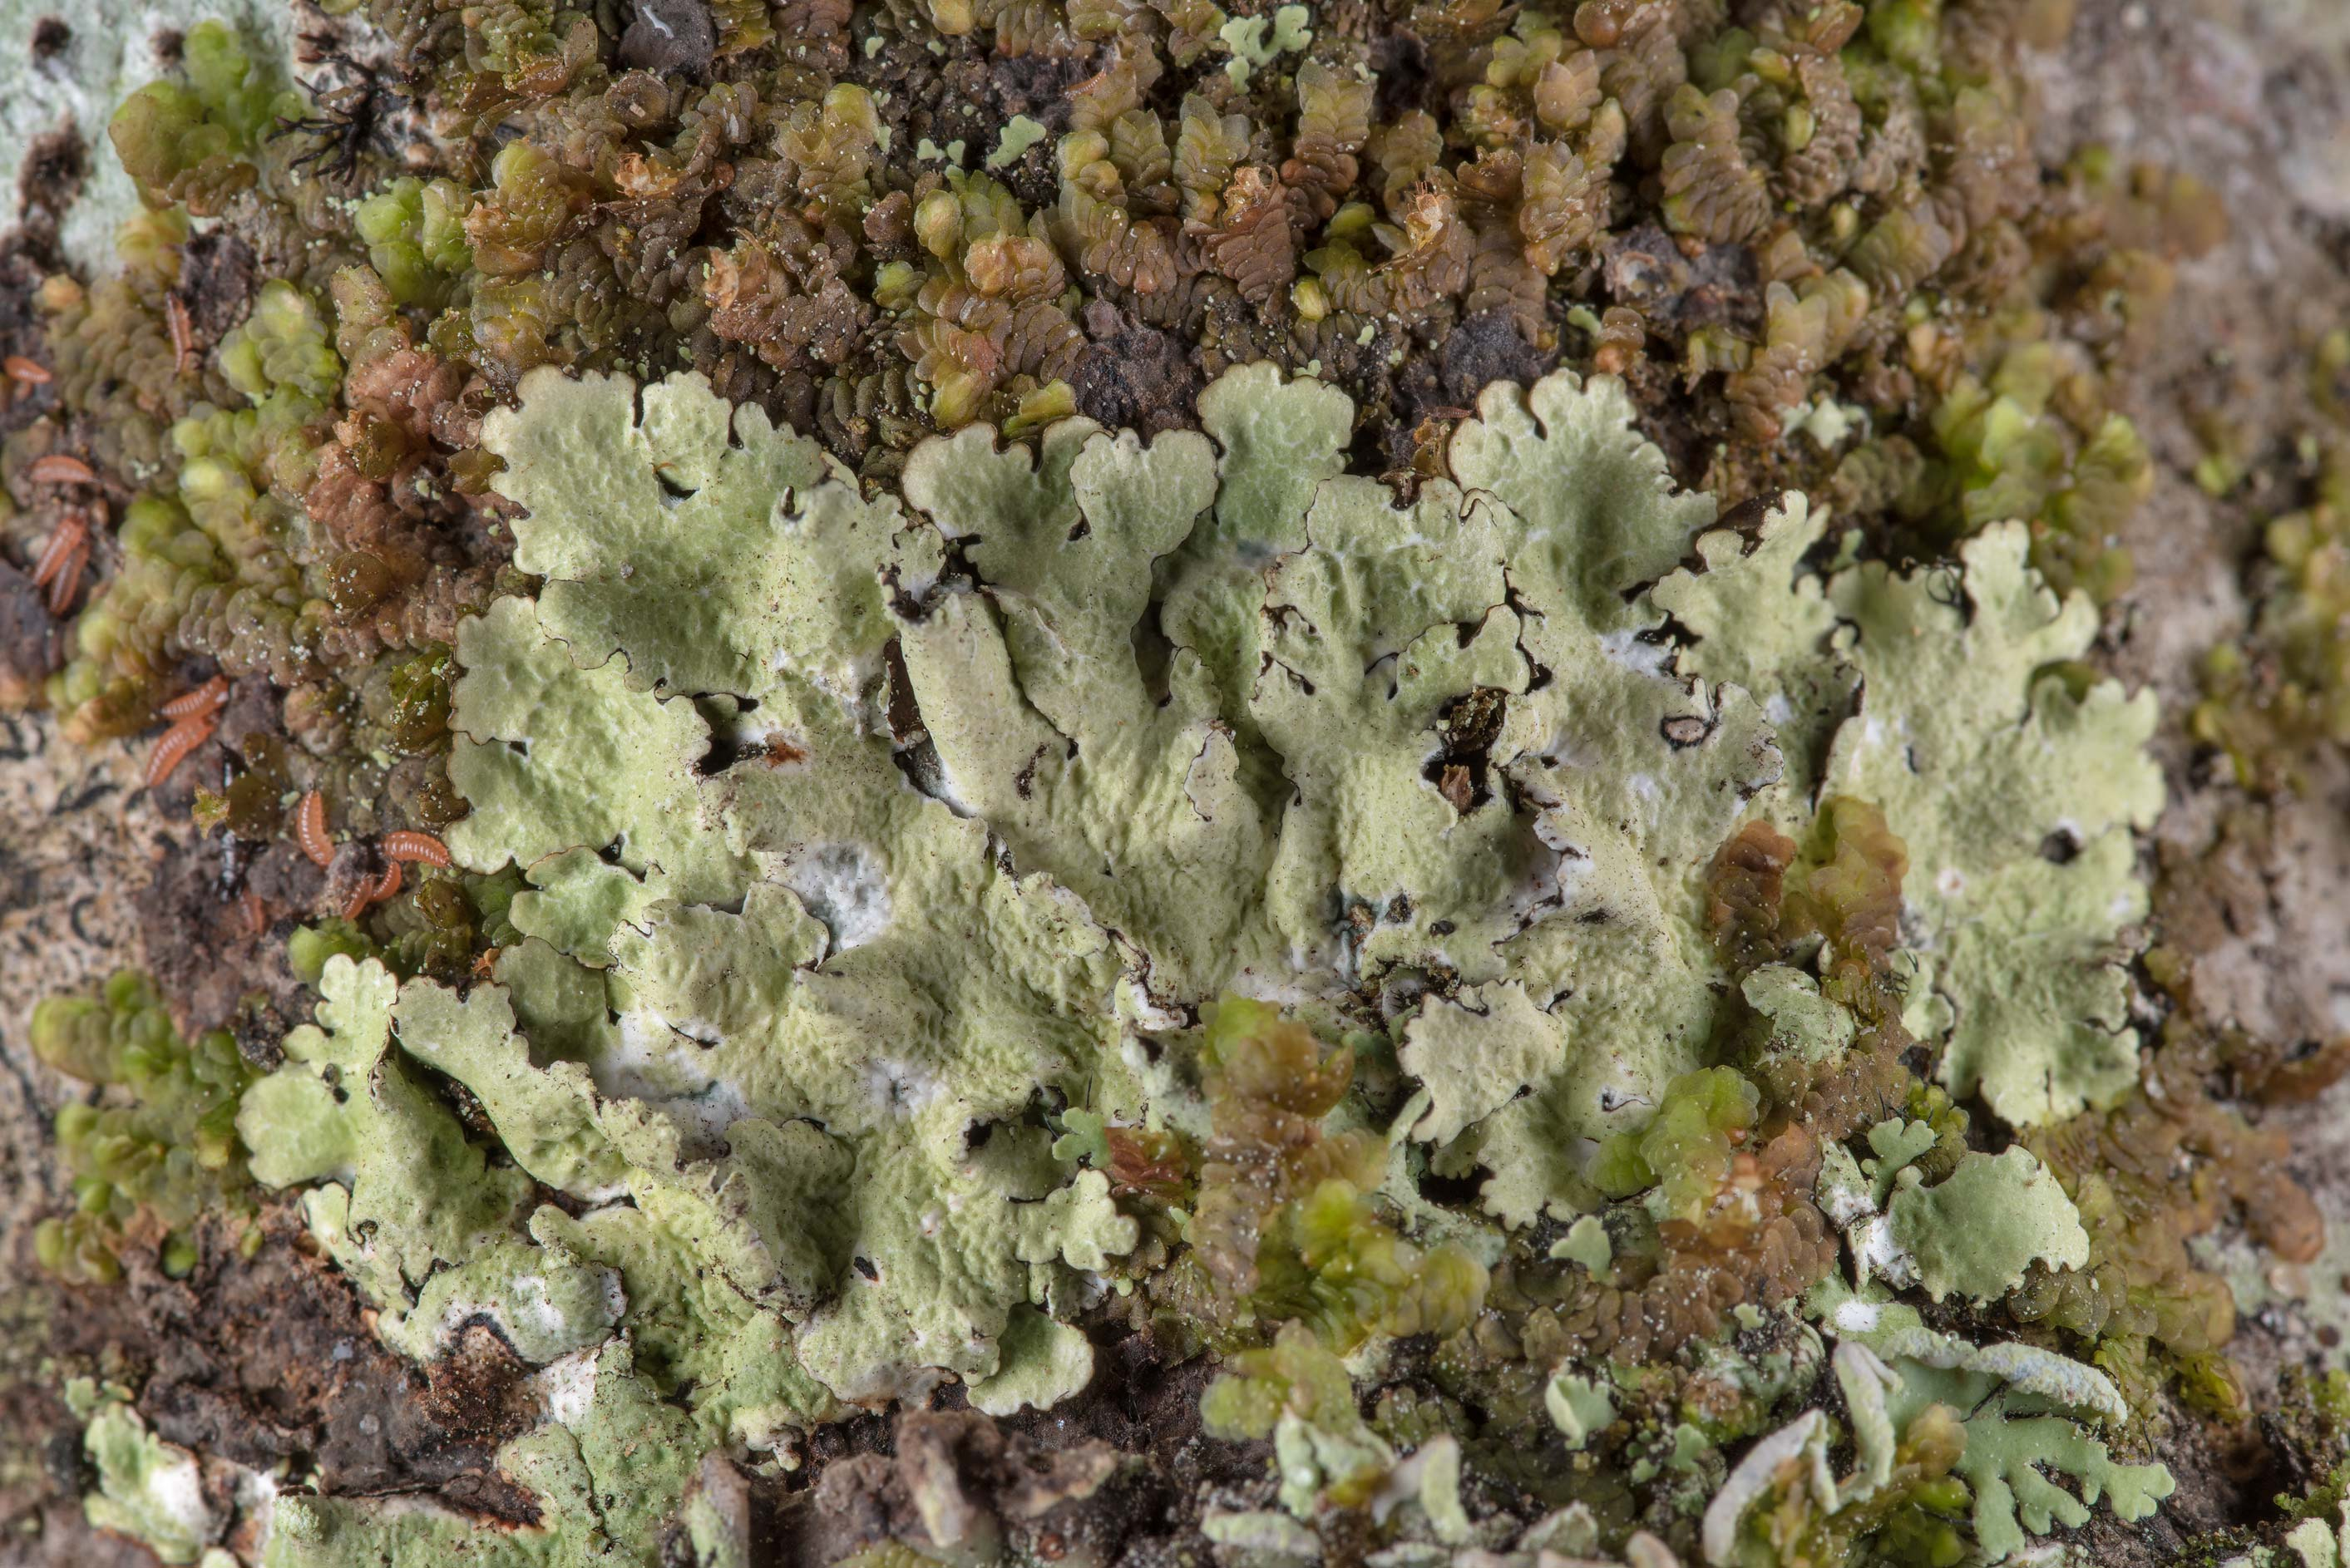 Parmotrema lichen in Big Creek Scenic Area of Sam Houston National Forest. Shepherd, Texas